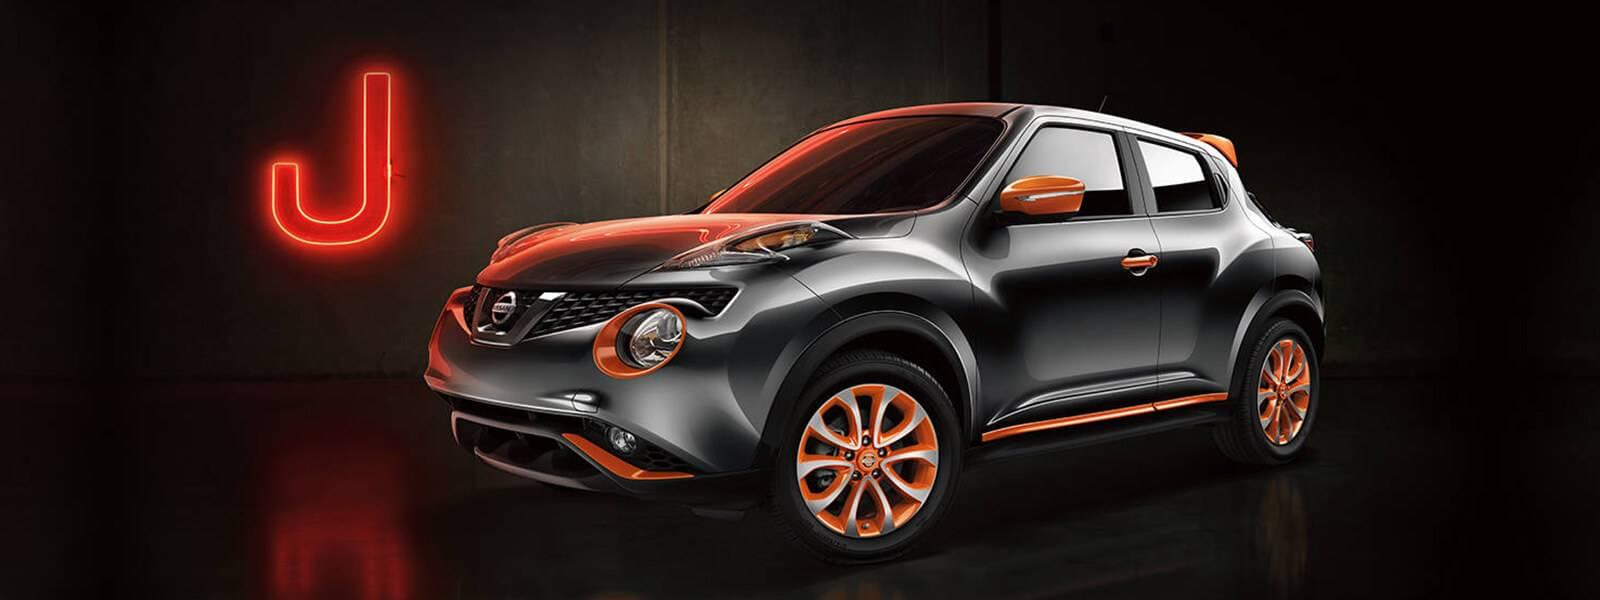 2017 Nissan Juke in black next to neon sign